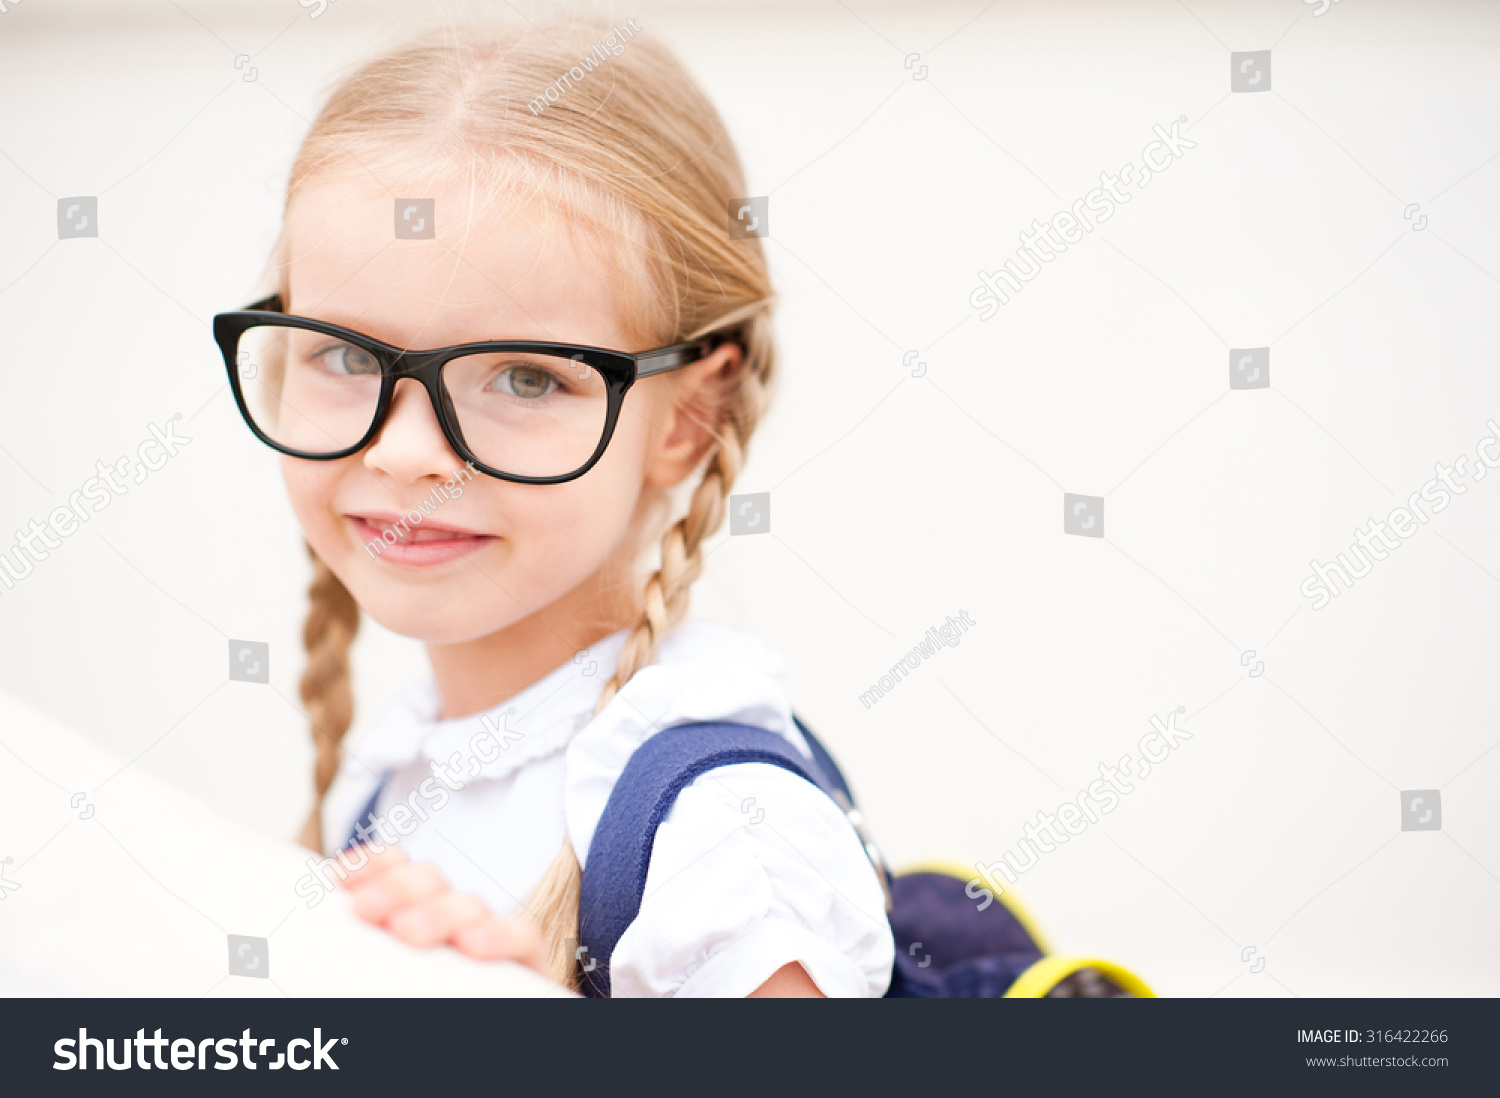 School bag for year 7 - Smiling Kid Girl 6 7 Year Old Wearing Glasses And School Bag Outdoors Blonde